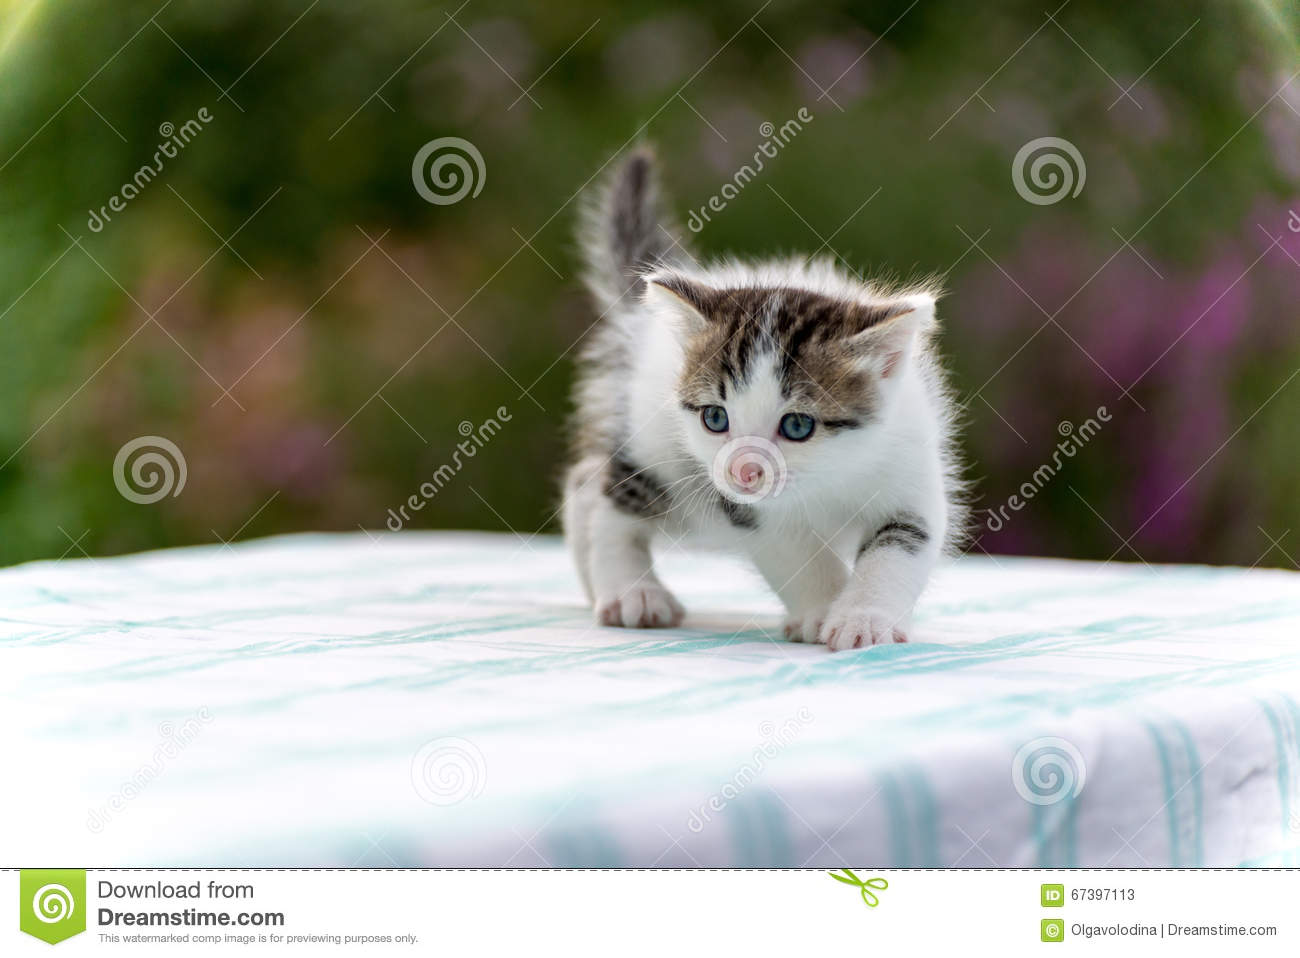 Spotted kitten standing on table in the garden